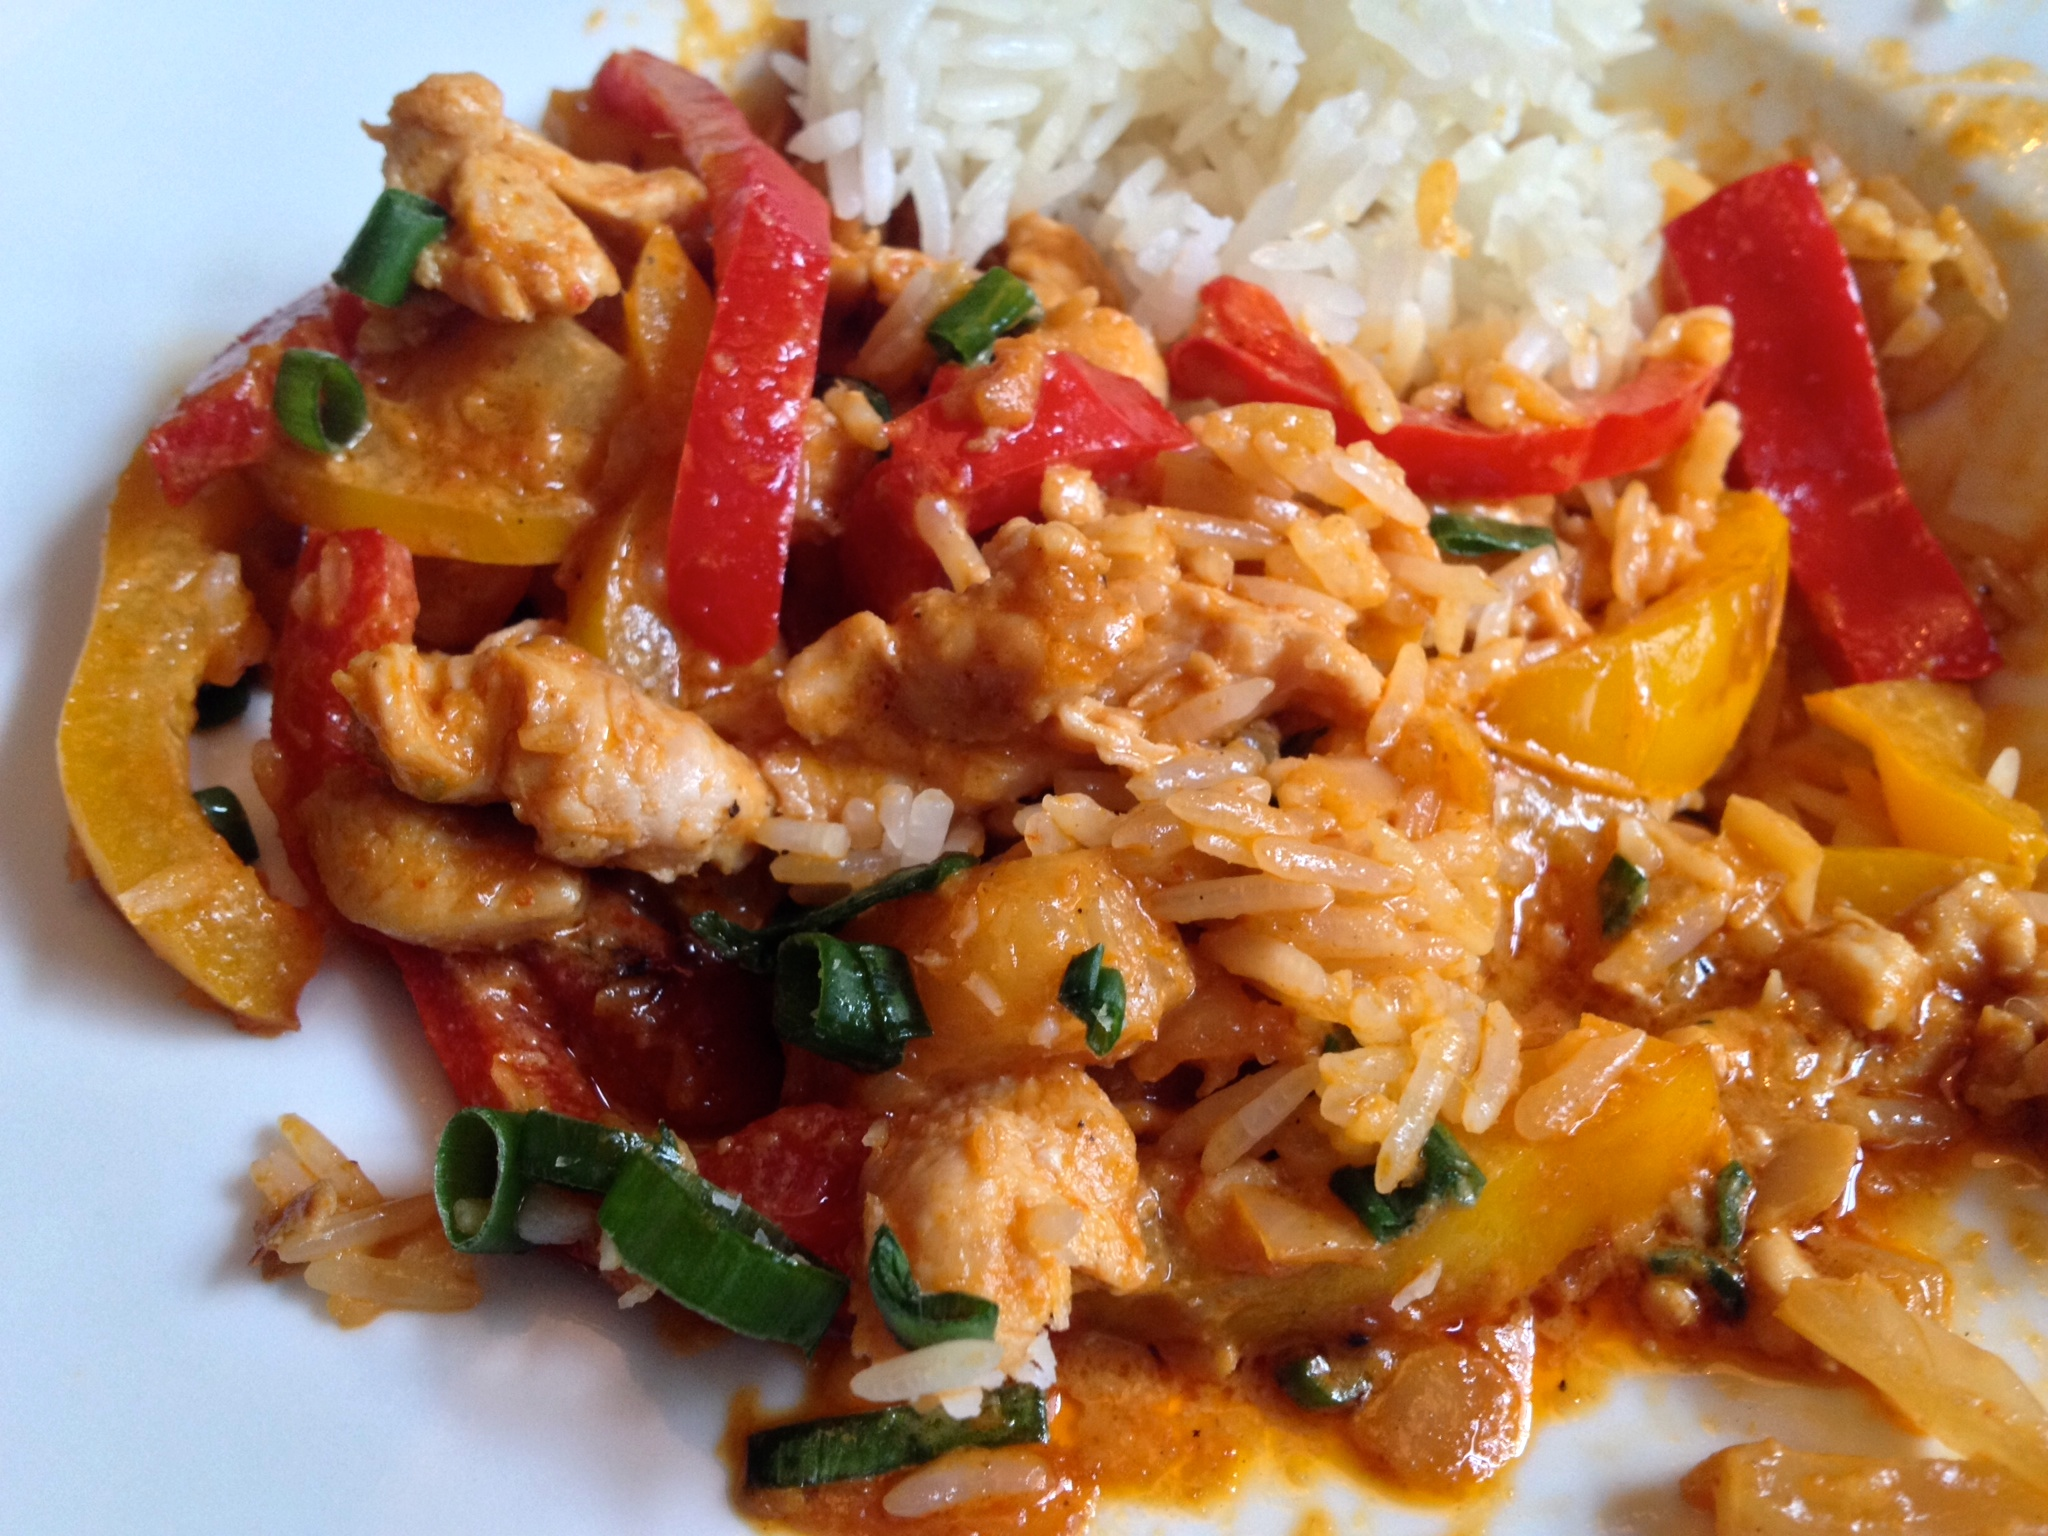 Chicken in red curry sauce with pineapple and peppers